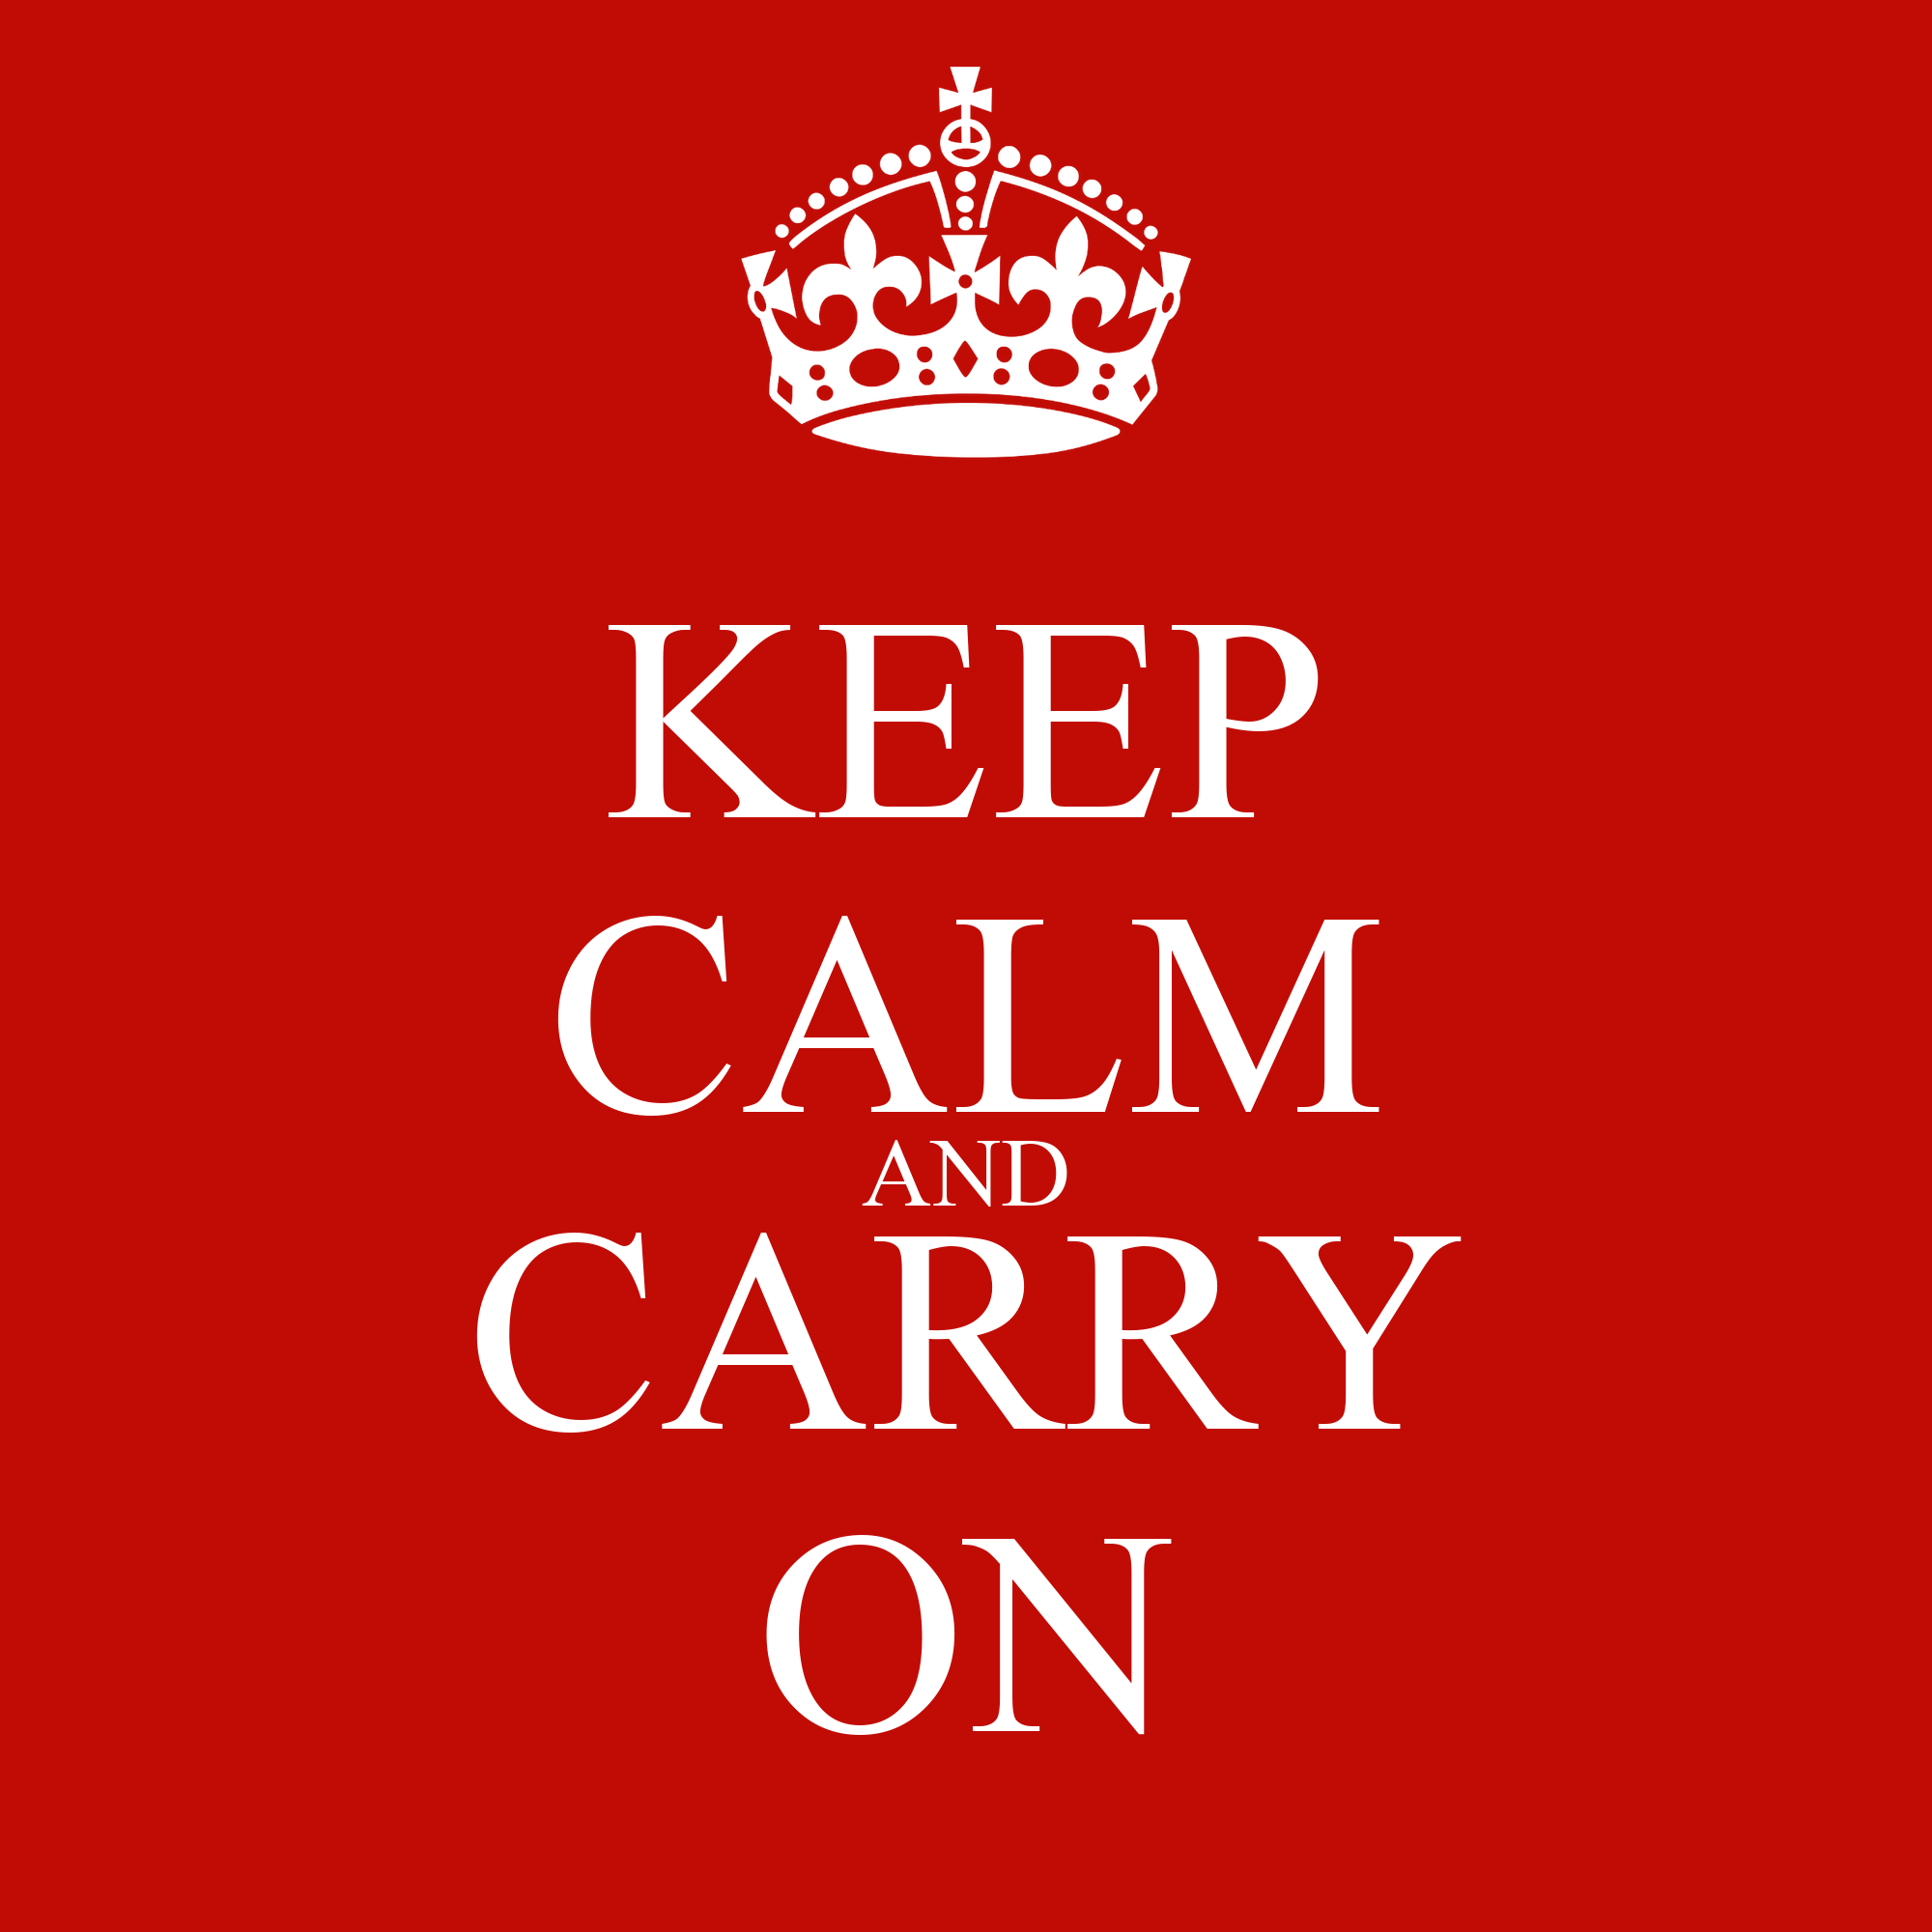 Wall Stickers Childrens Keep Calm And Carry On Keep Calm And Carry On Image